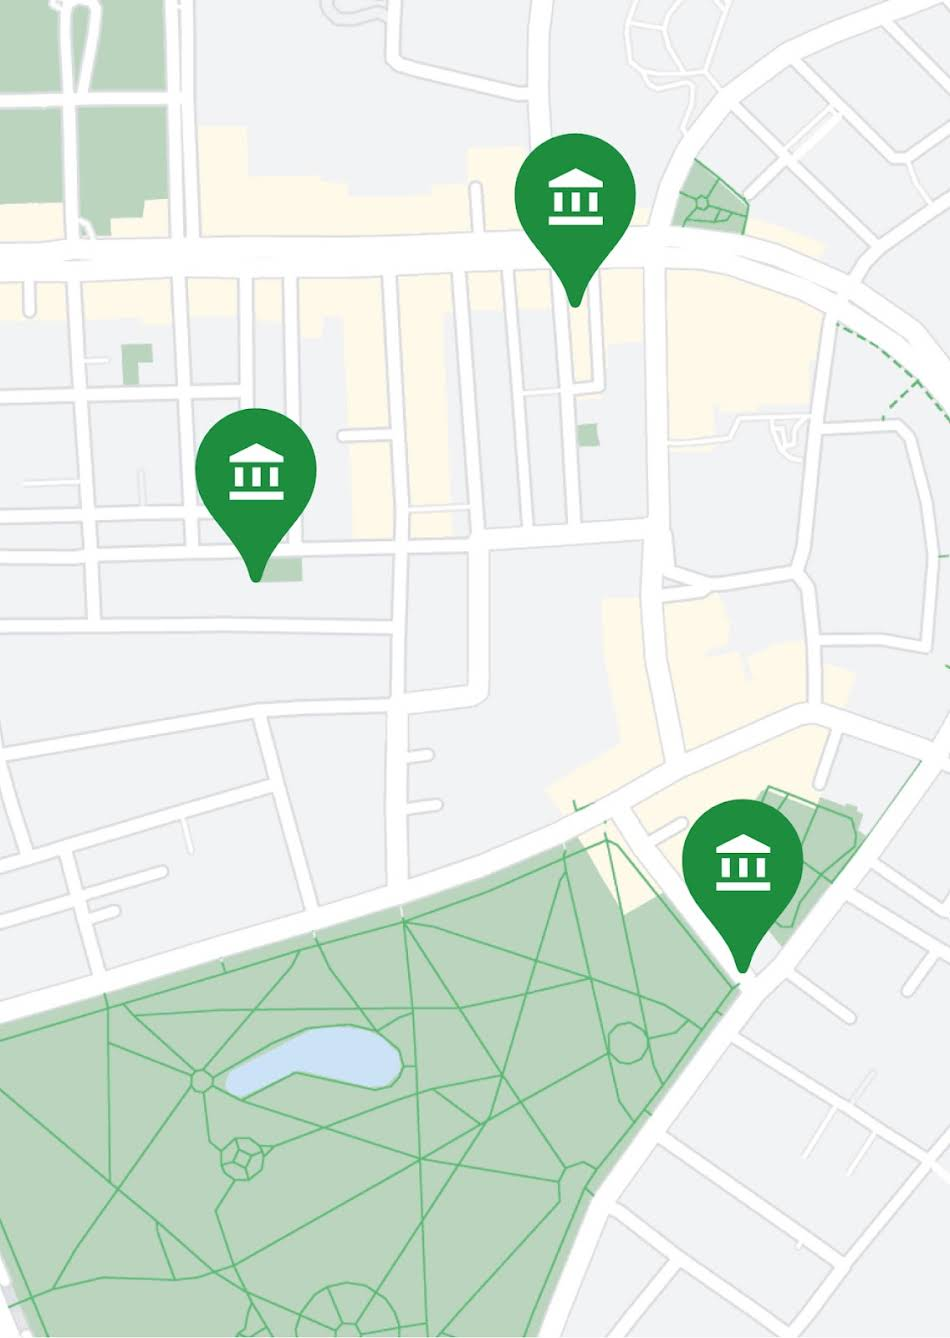 Three bank locations shown on a map